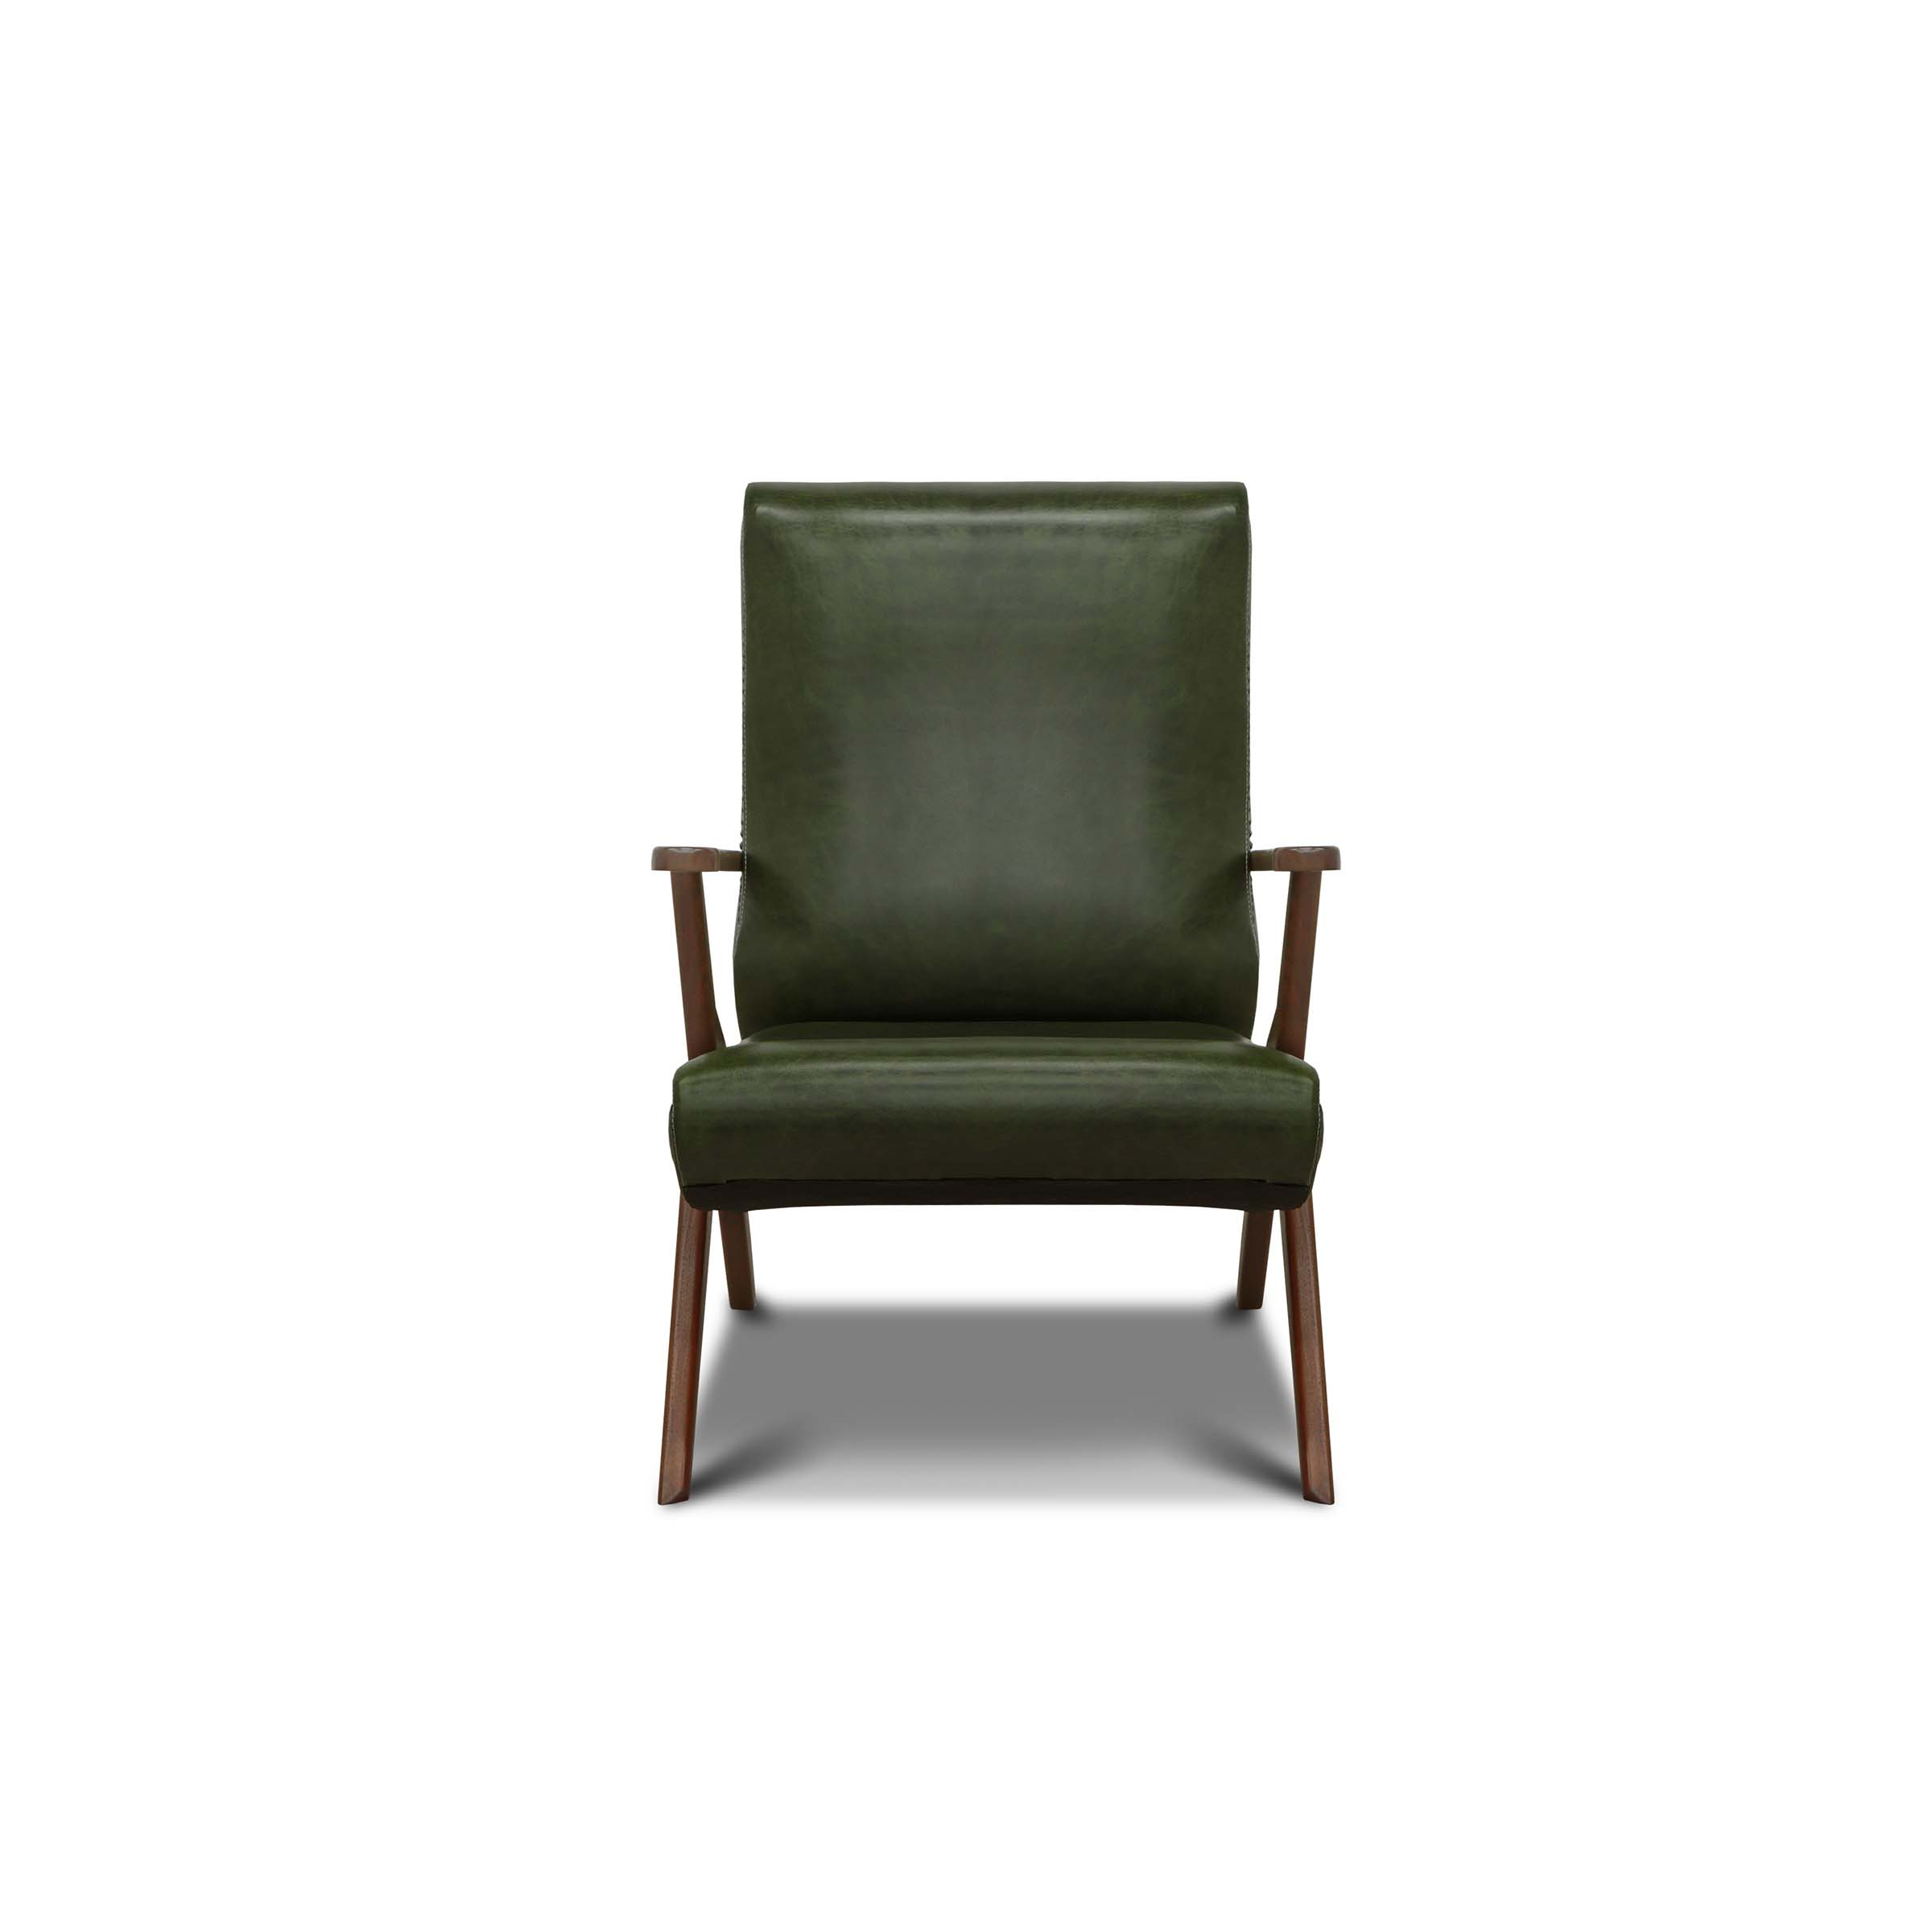 RUFINO - 1E Accent Chair Cartier